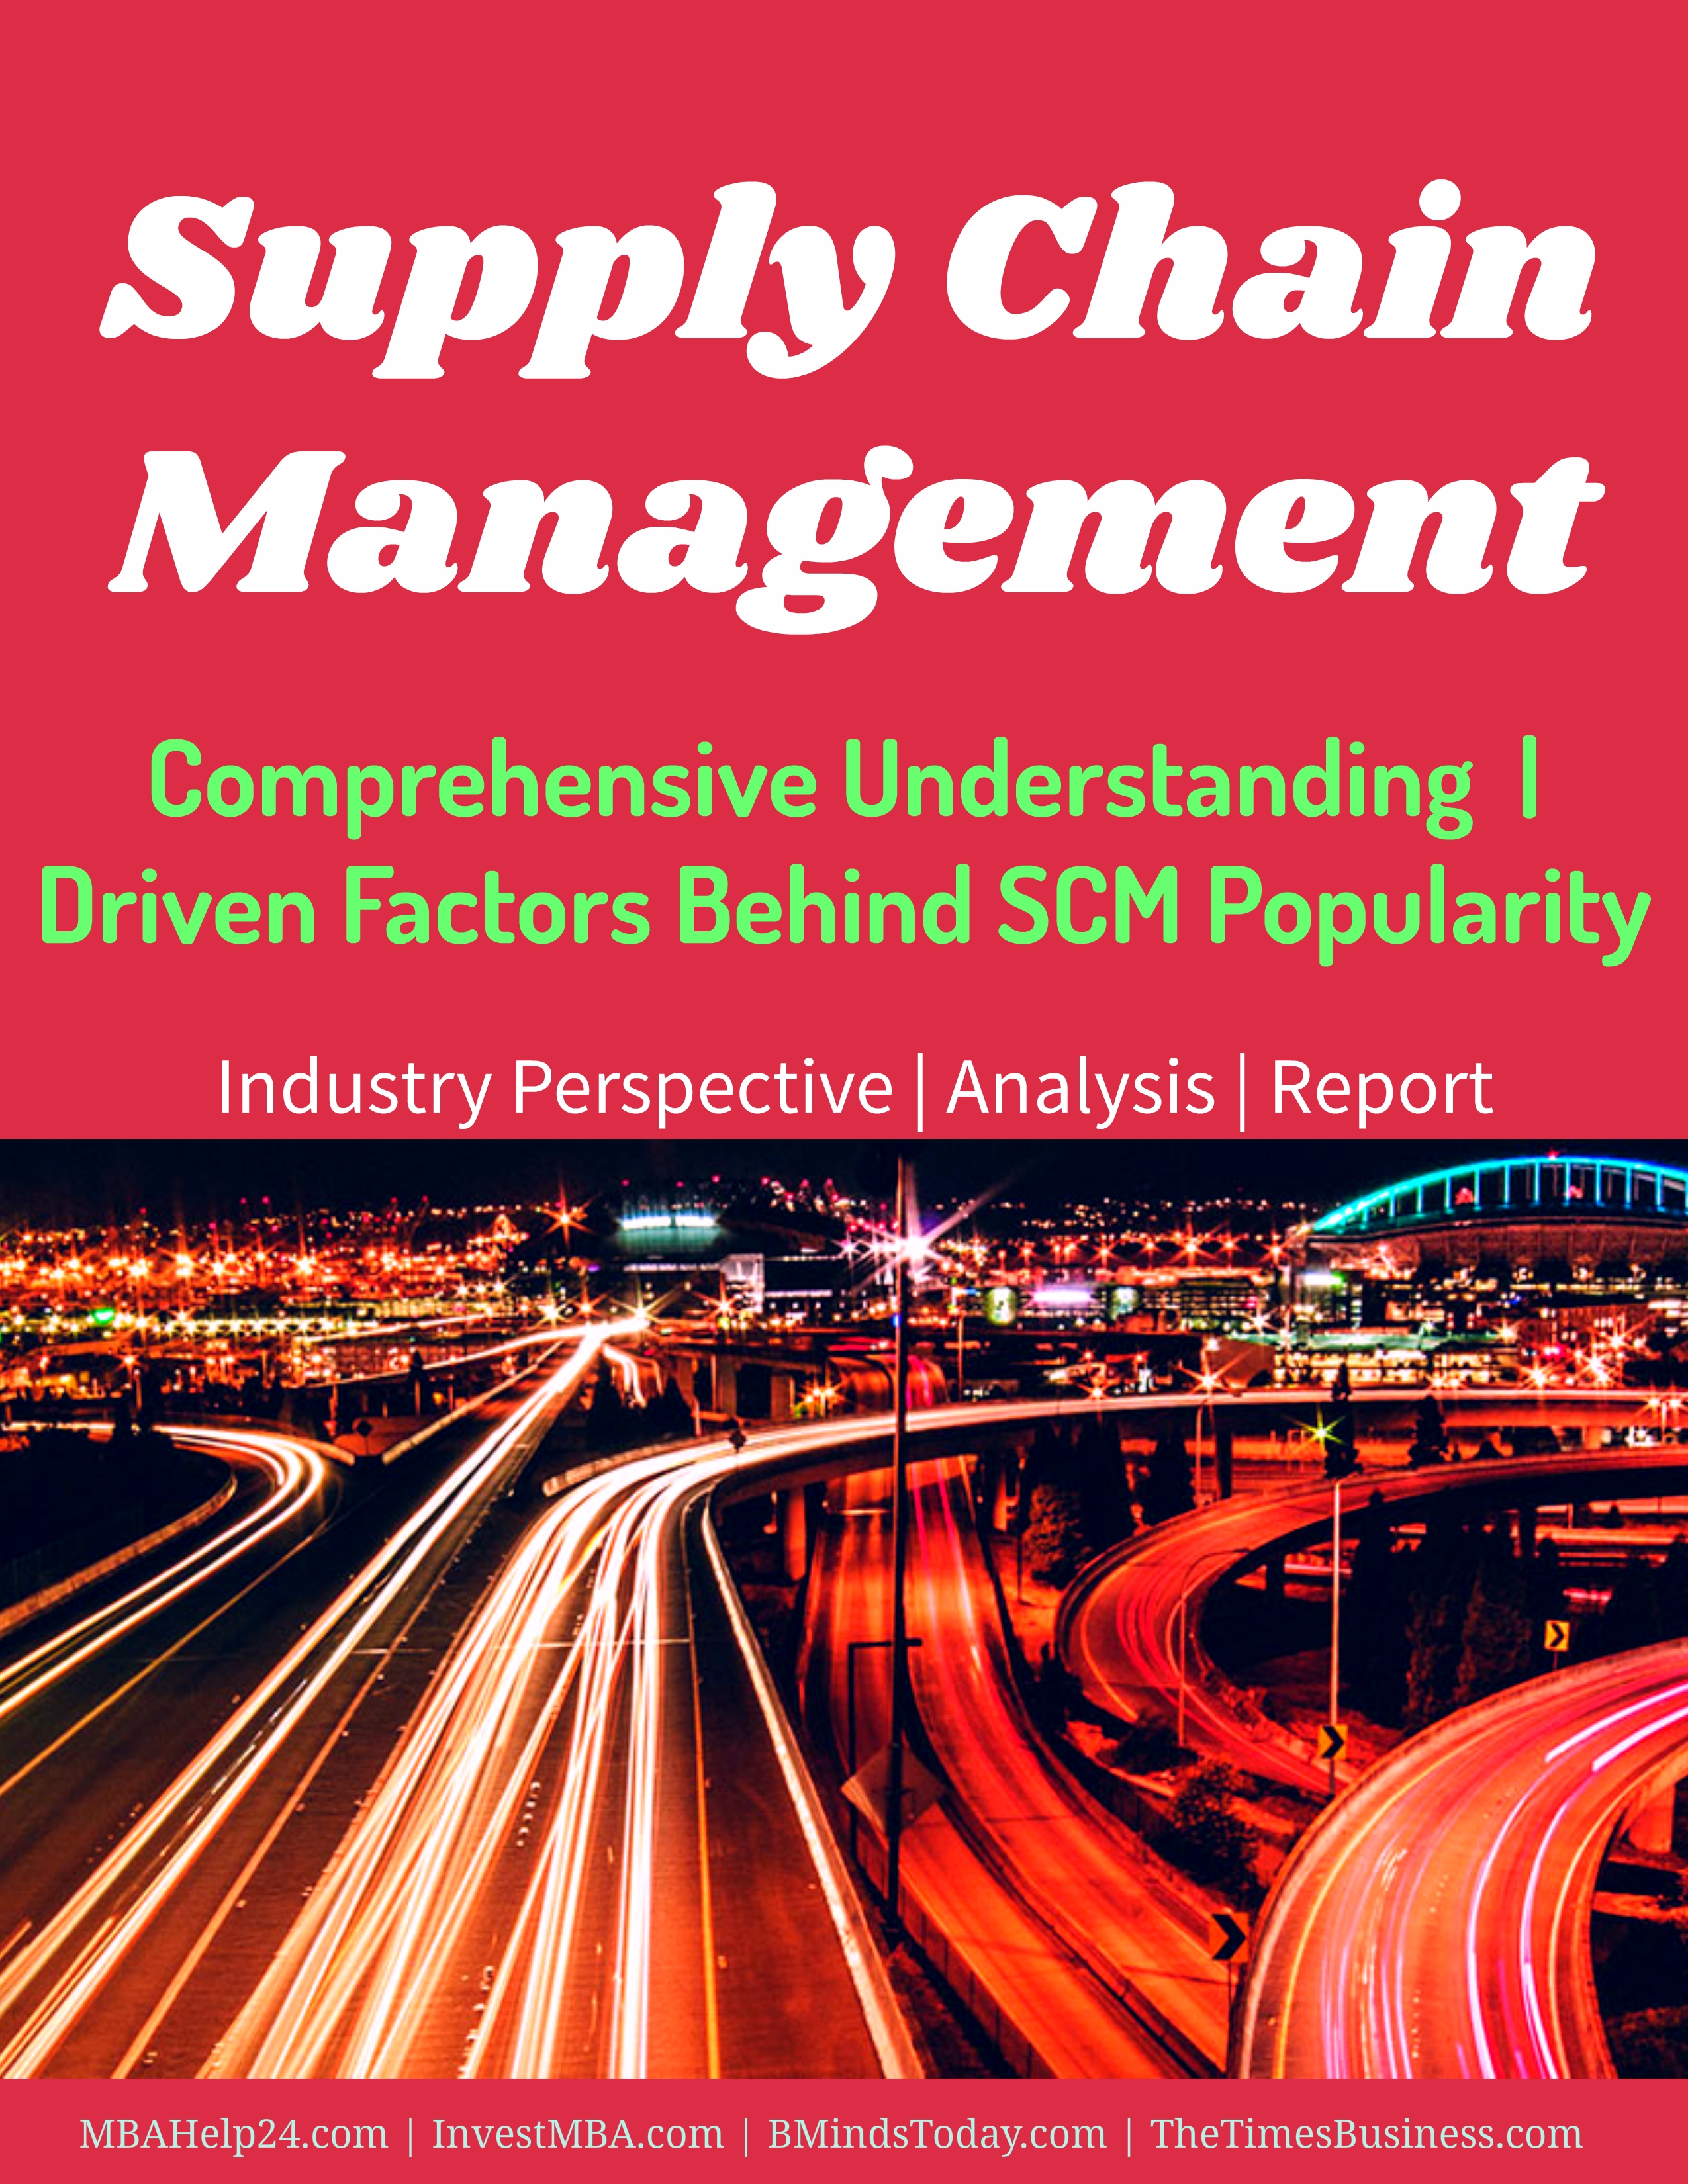 supply chain management terms and san Supply chain management education at sdsu college of business administration san diego state university is an academically rich urban university that provides endless possibilities for students since it was founded in 1897, san diego state university has grown to offer bachelor's degrees in 84 areas, master's degrees in 76 areas and .